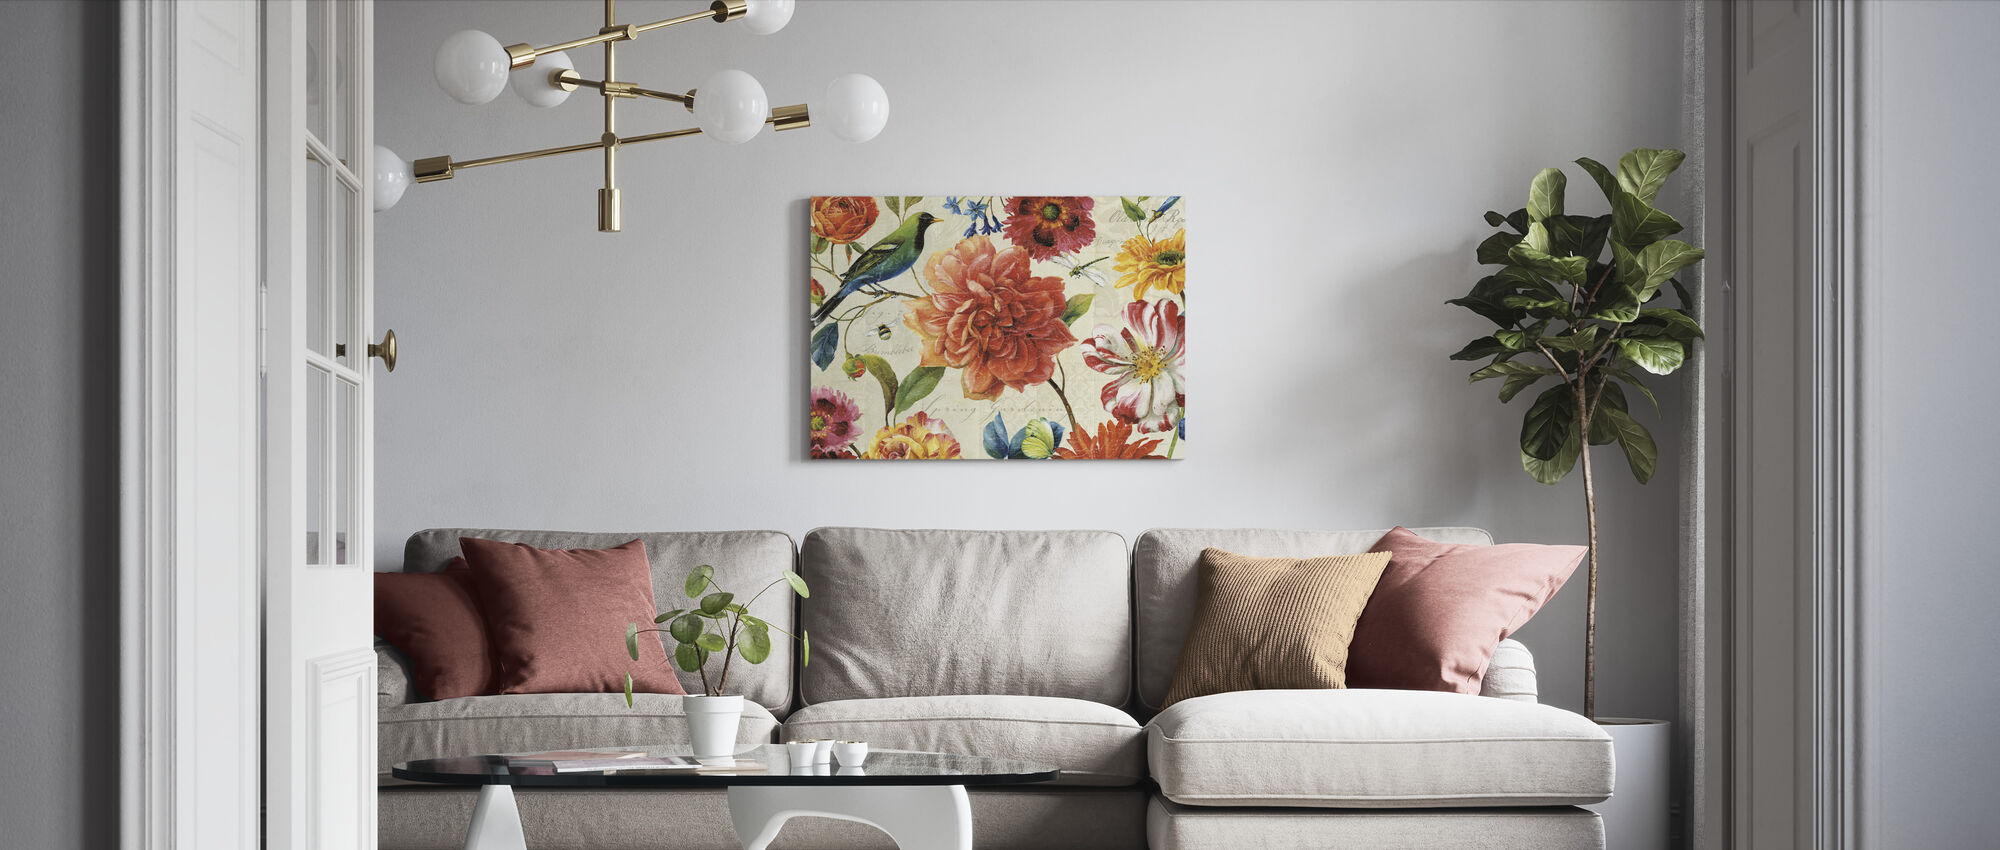 Rainbow Garden Cream - Canvas print - Living Room